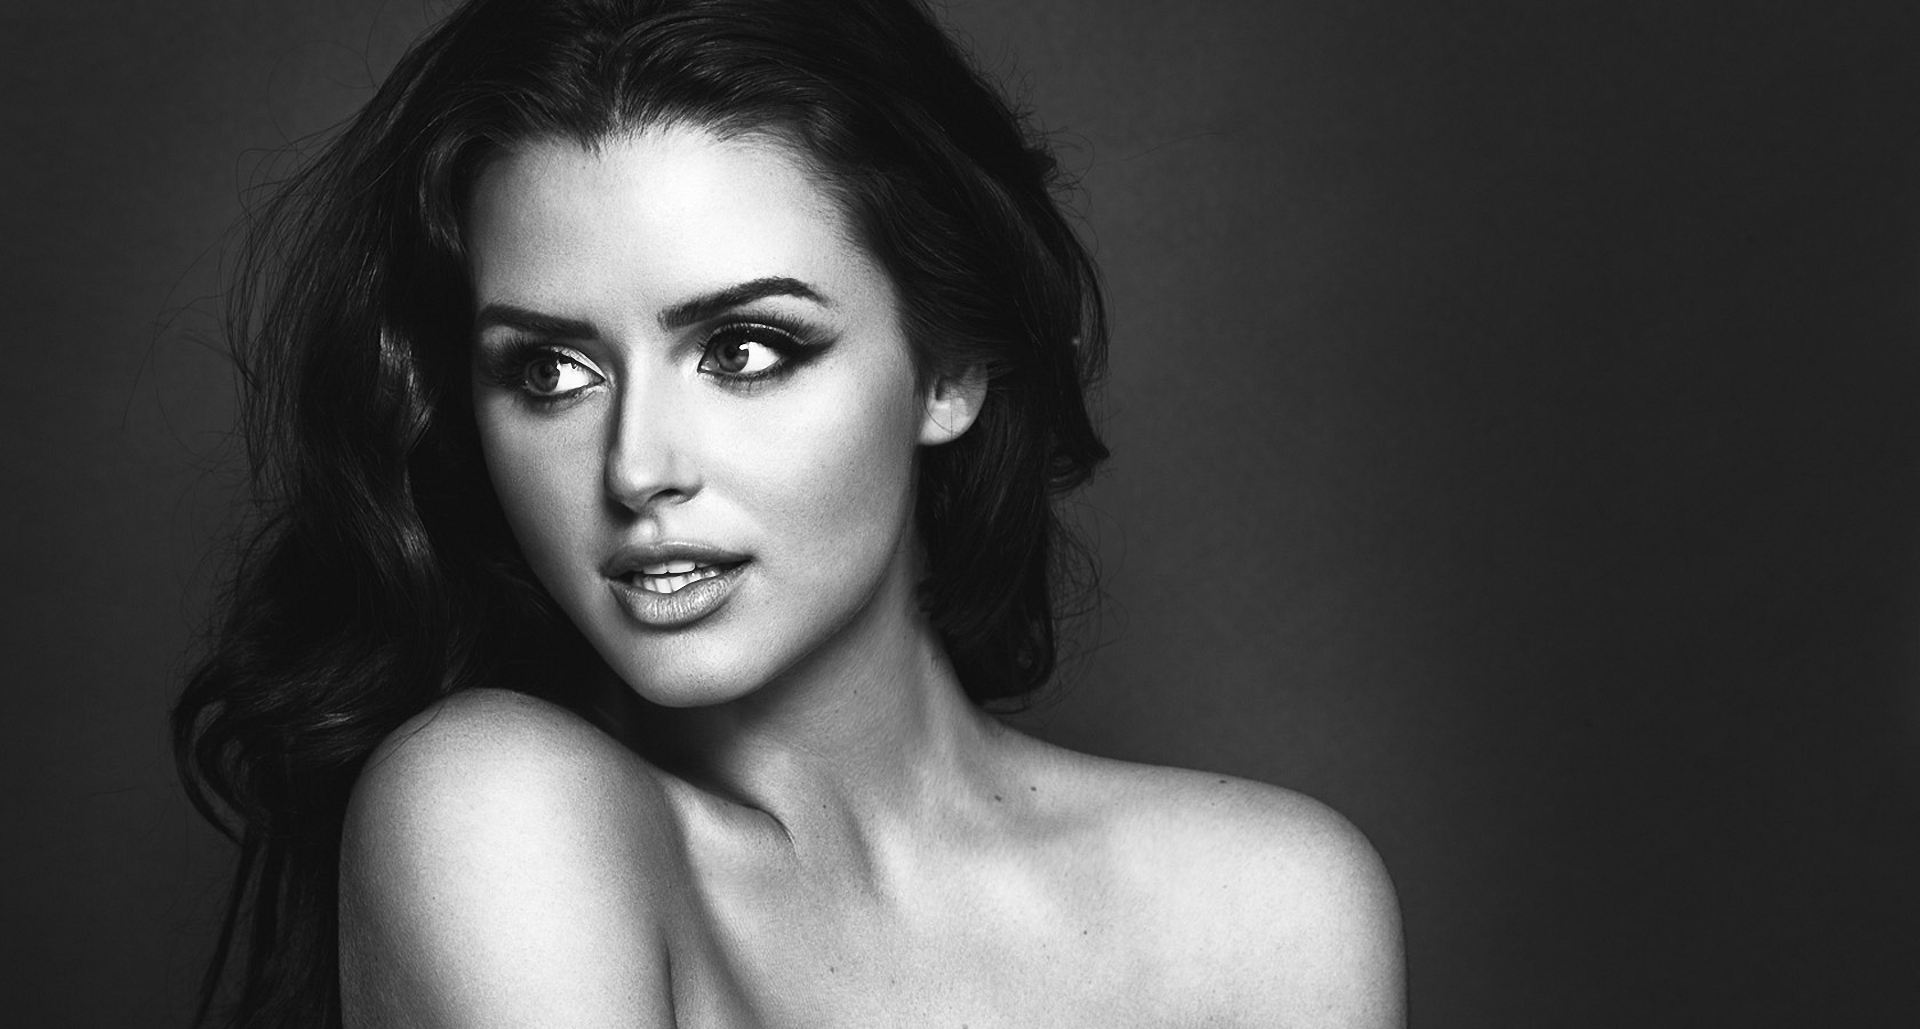 Abigail Ratchford Wallpapers Images Photos Pictures Backgrounds